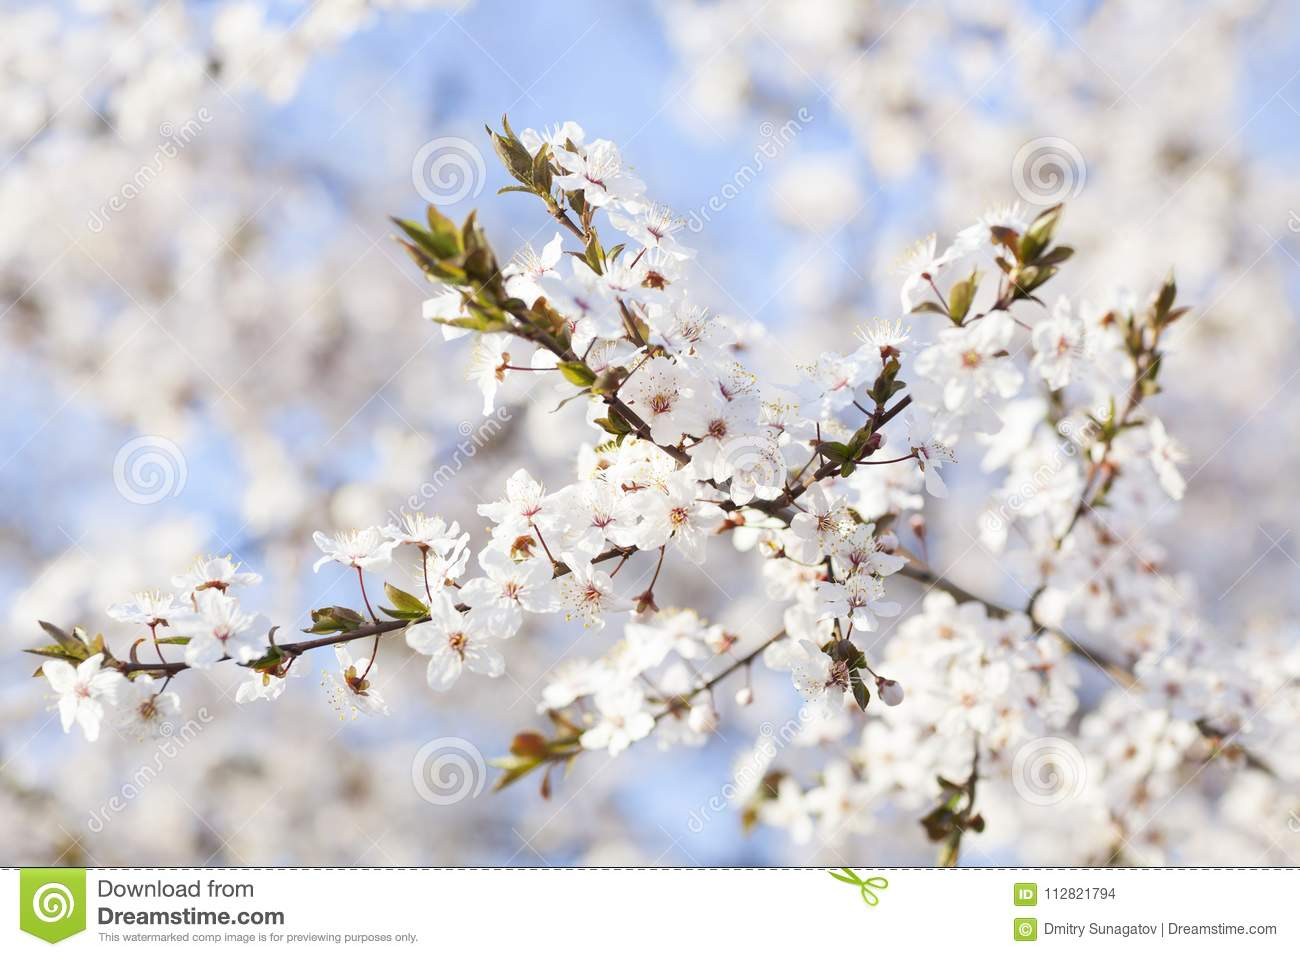 Spring beauty blooming white flowers of trees on the blue sky b download spring beauty blooming white flowers of trees on the blue sky b stock photo mightylinksfo